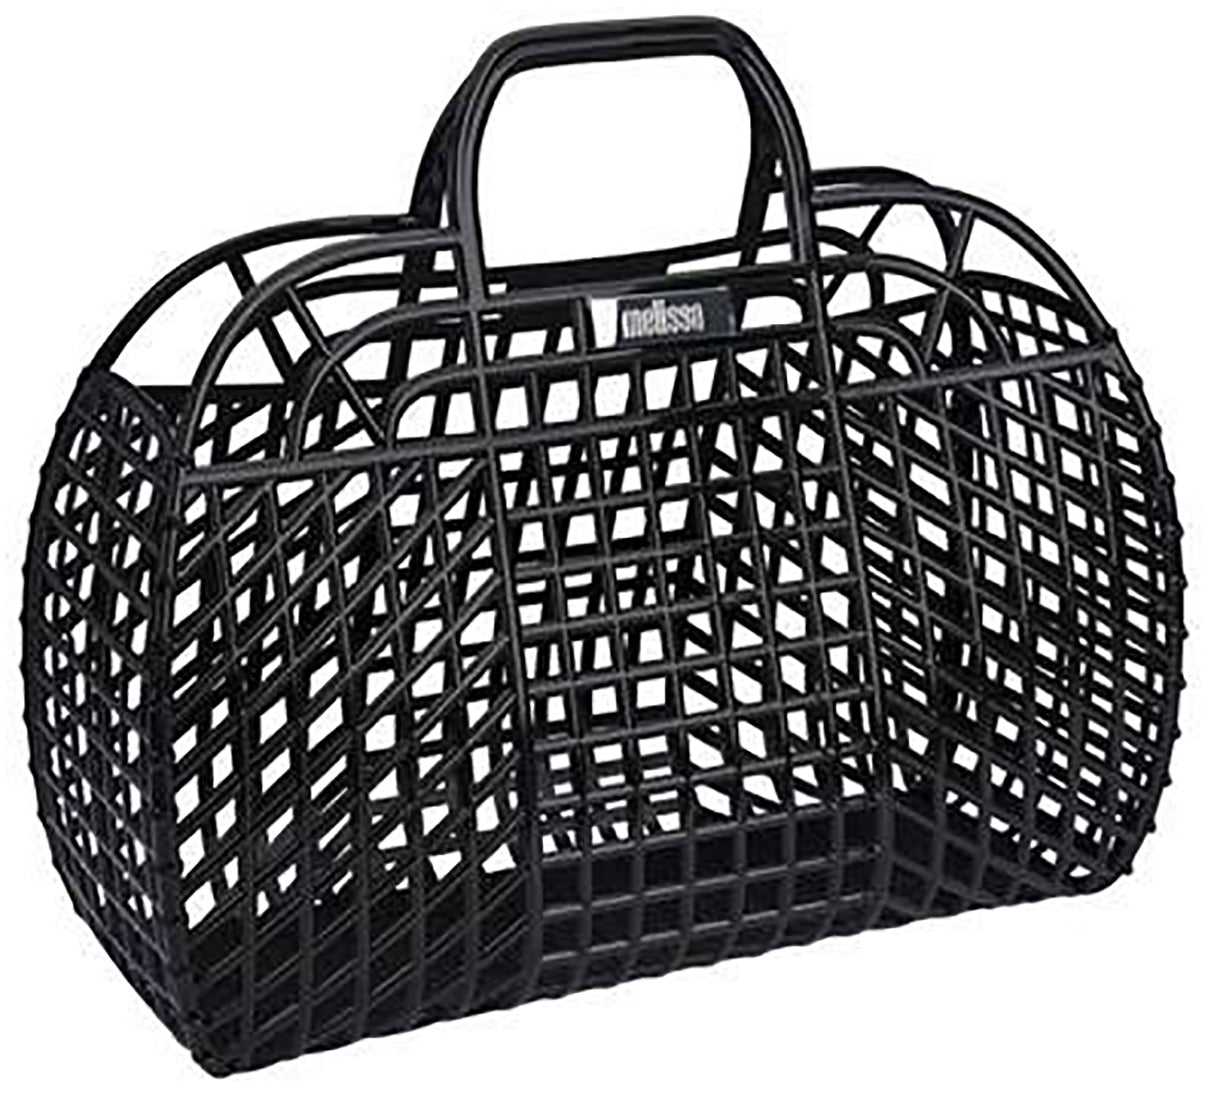 Melissa Black Basket Bag - alternative apparel sustainable ethical fashion